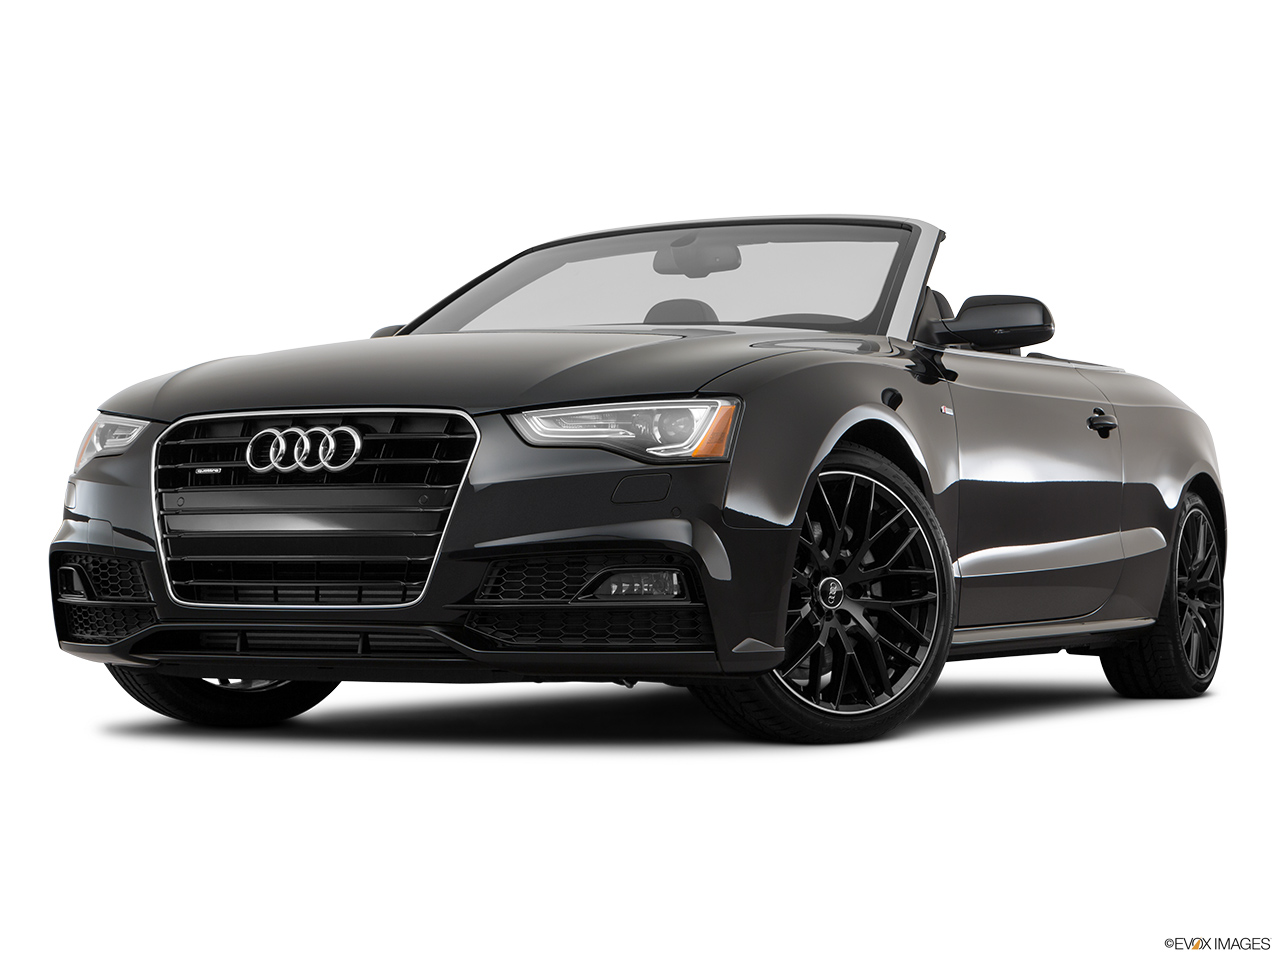 2017 Audi A5 Sport Cabriolet 2.0 TFSI Front angle view, low wide perspective.